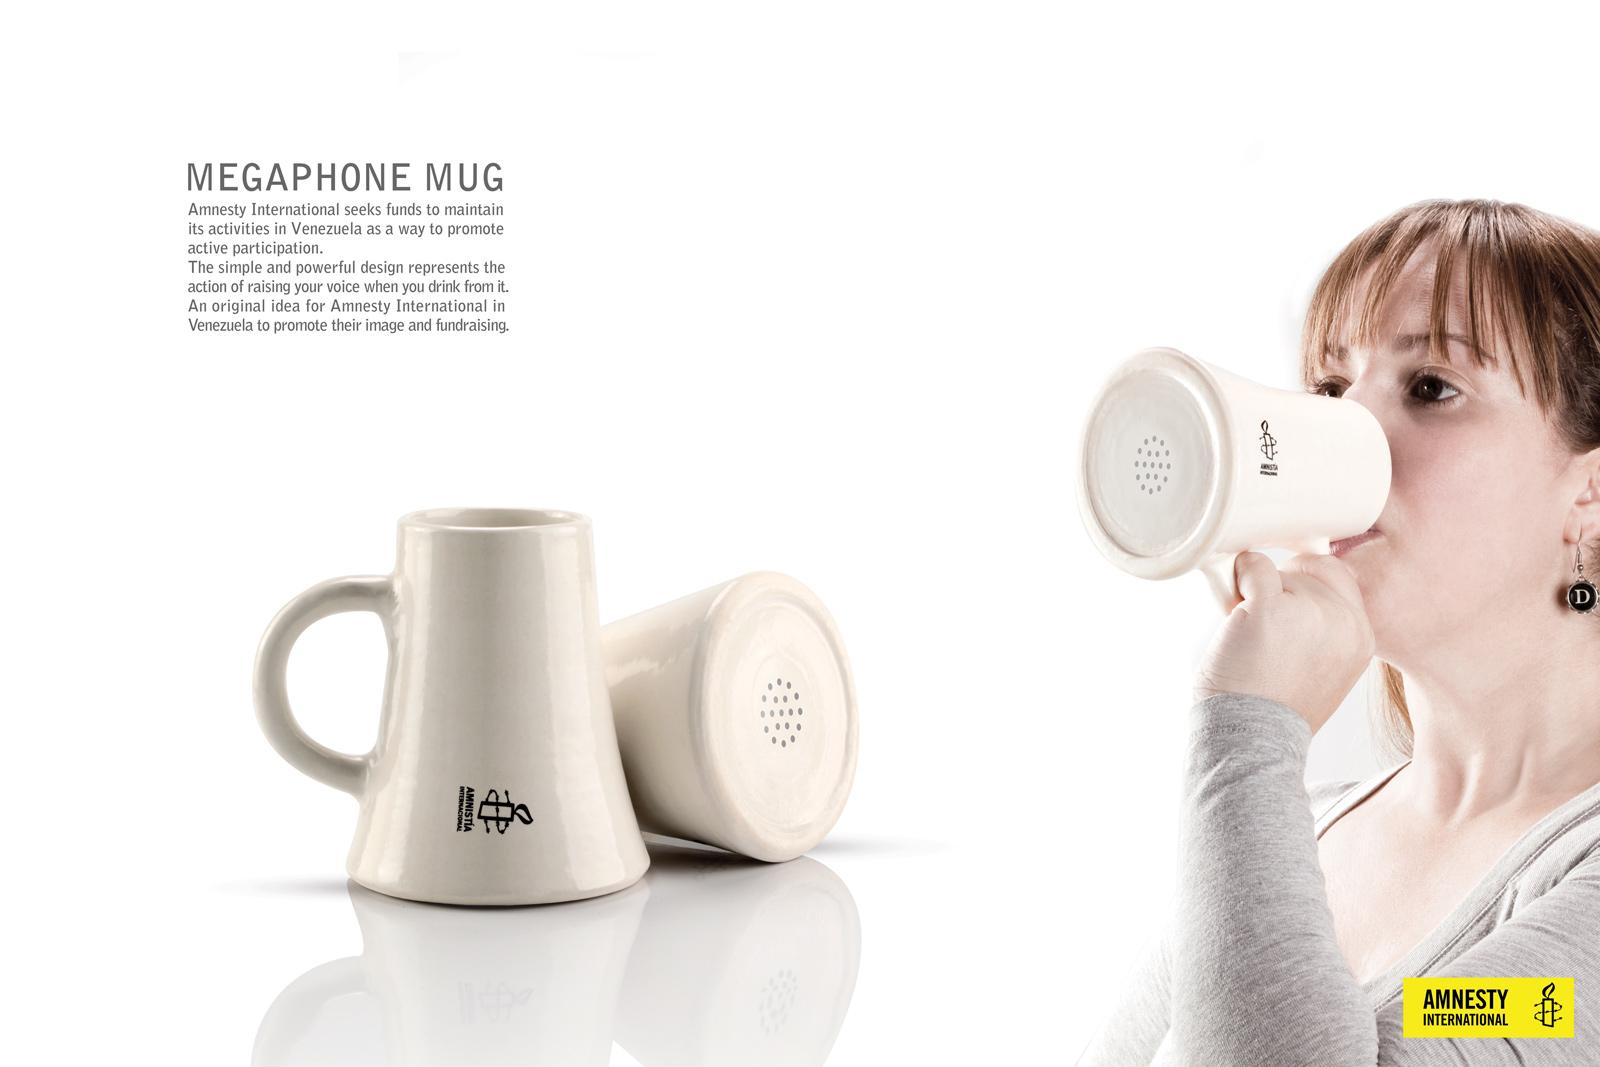 Amnesty International Direct Ad -  Megaphone Mug